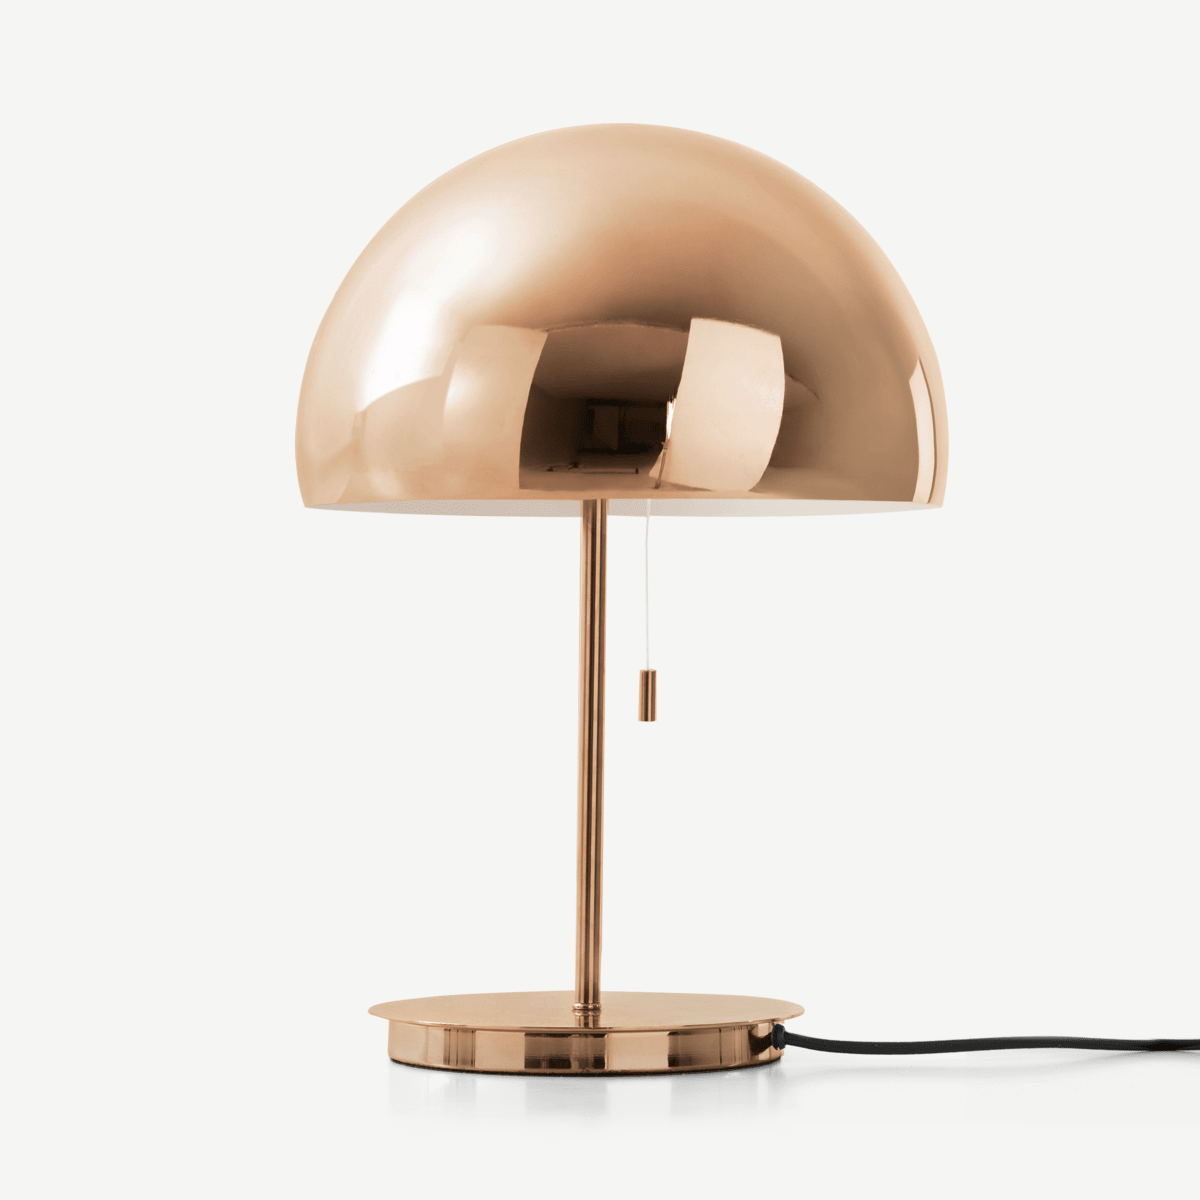 Collet-Dome-Table-Lamp-Champagne-Copper_26958797149.jpg